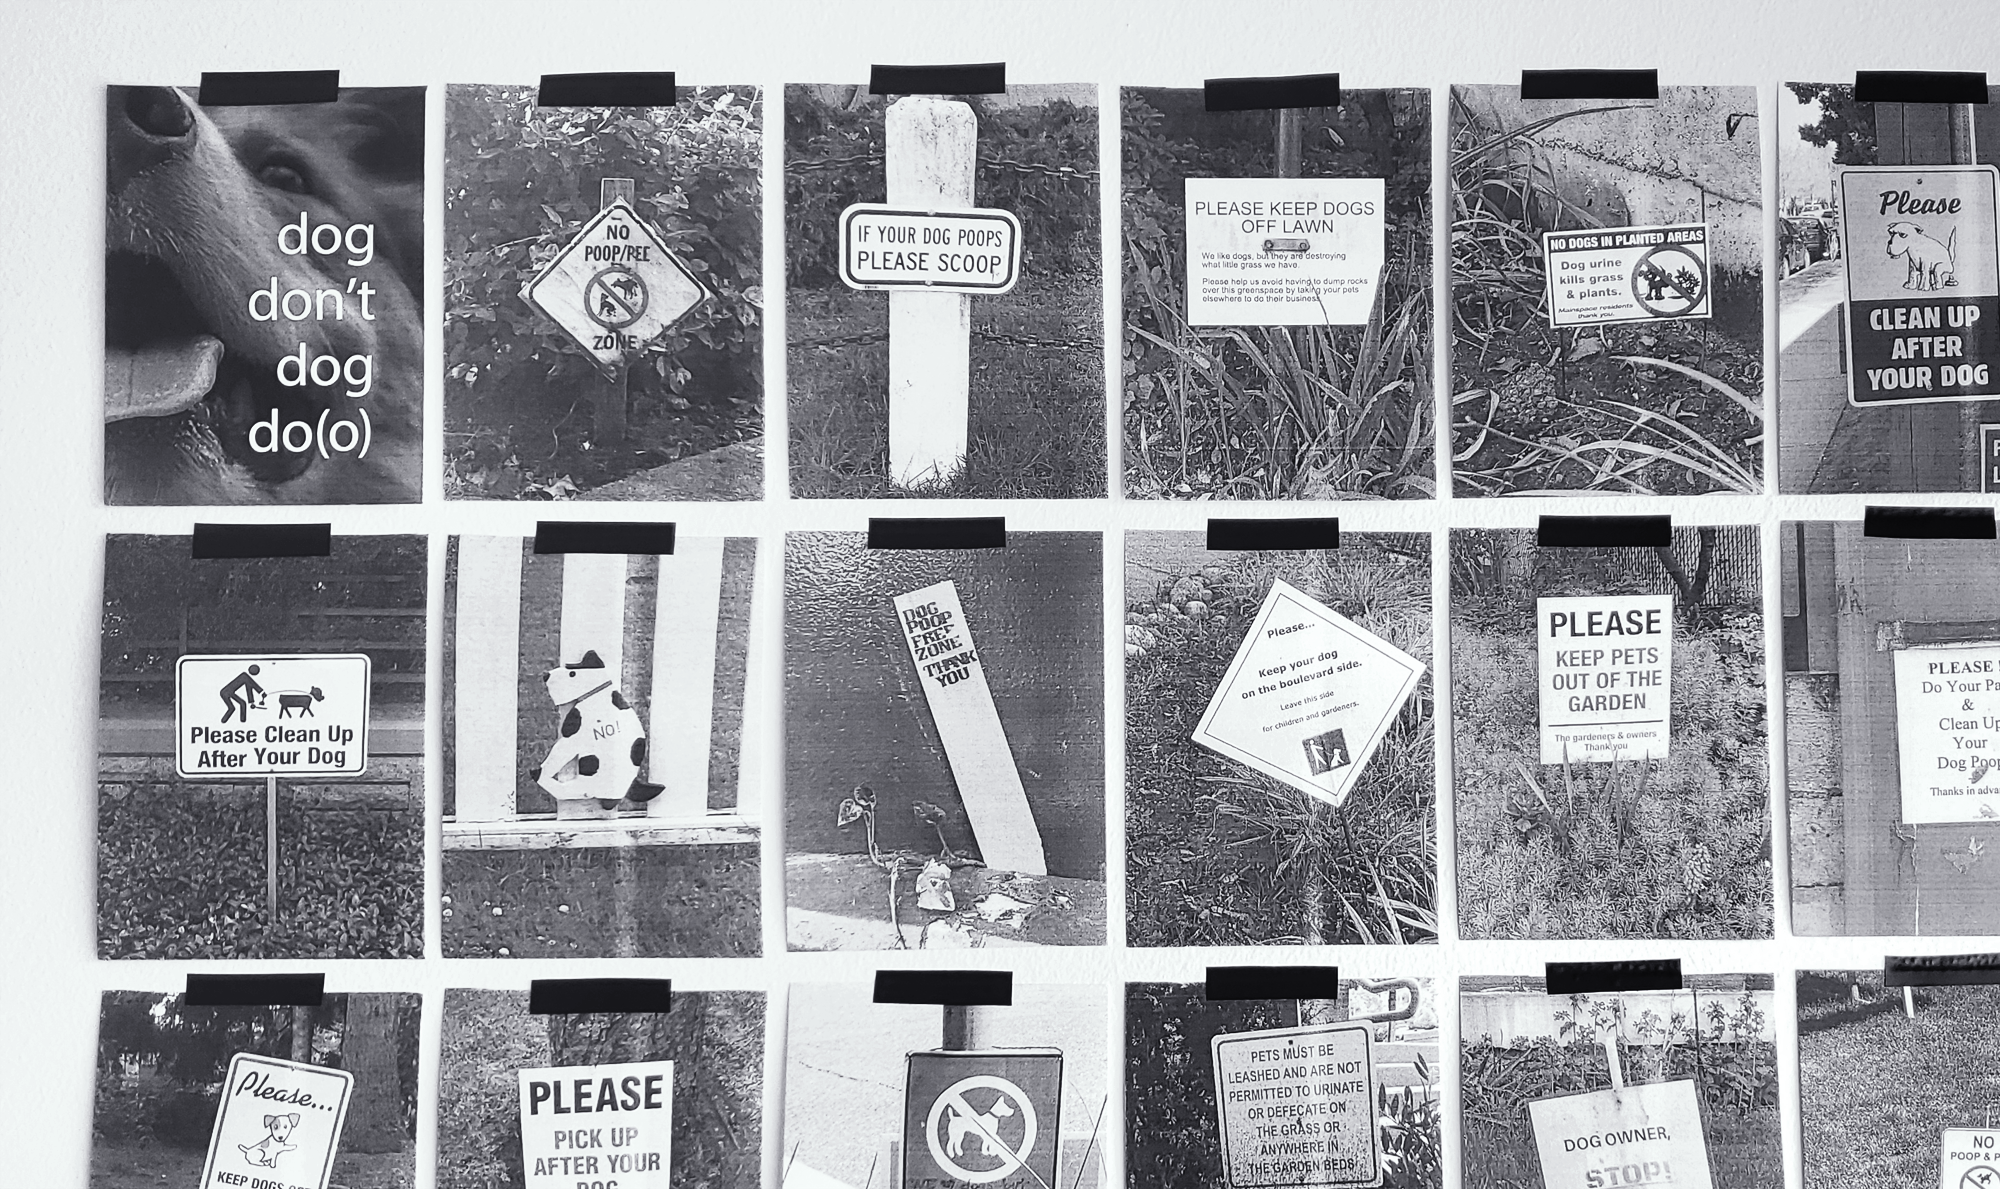 detail shot of dog don't, dog do(o), a series of photographs of anti dog poo signs